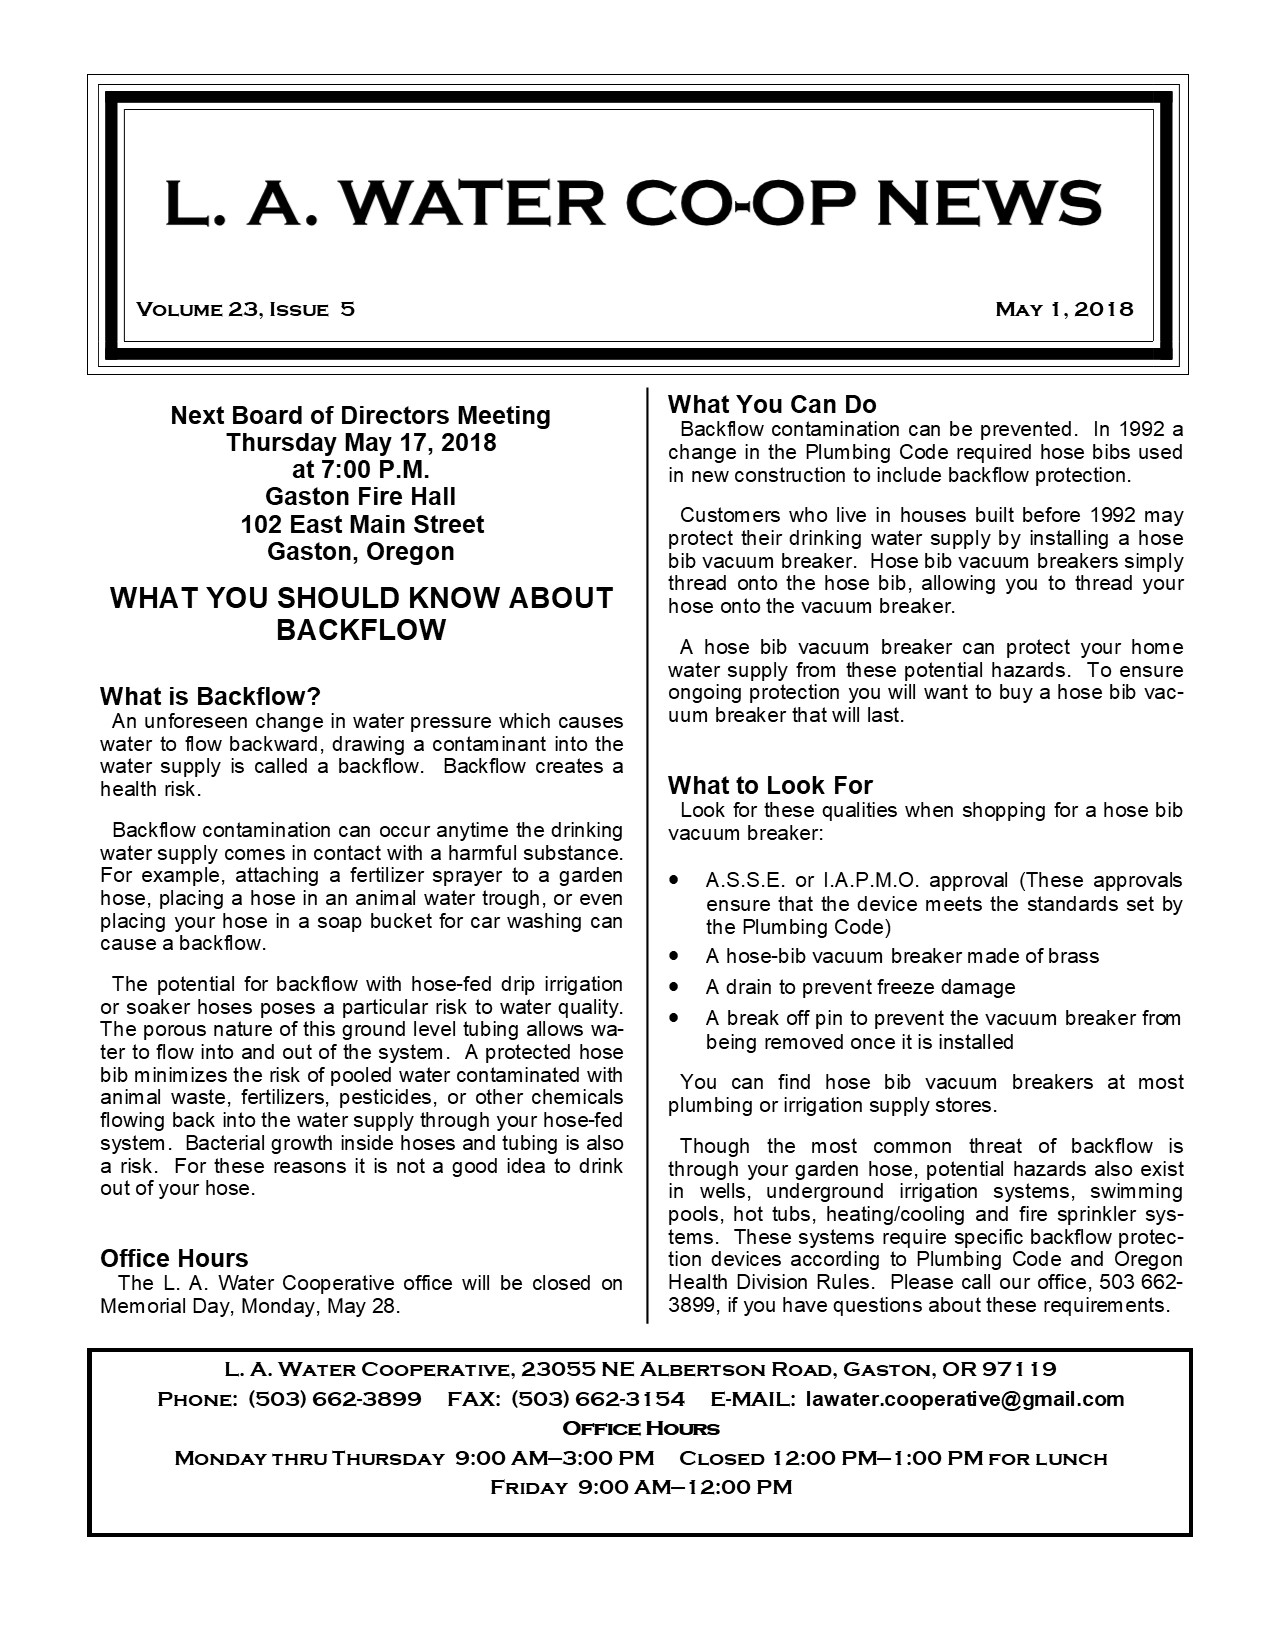 Co-Op News by Month – L. A. WATER COOPERATIVE on car system diagram, car relay diagram, car stereo diagram, car thermostat diagram, car schematic diagram, basic alarm system circuit diagram, car frame diagram, car engine diagram, elevator fire alarm system diagram, car alarm lights, car alarm manual, car electrical wiring, car alarm system, car alarm relay, viper 5904 installation diagram, car audio diagram, vehicle alarm system diagram, car alarm repair, car alarm installation, basic car alarm diagram,